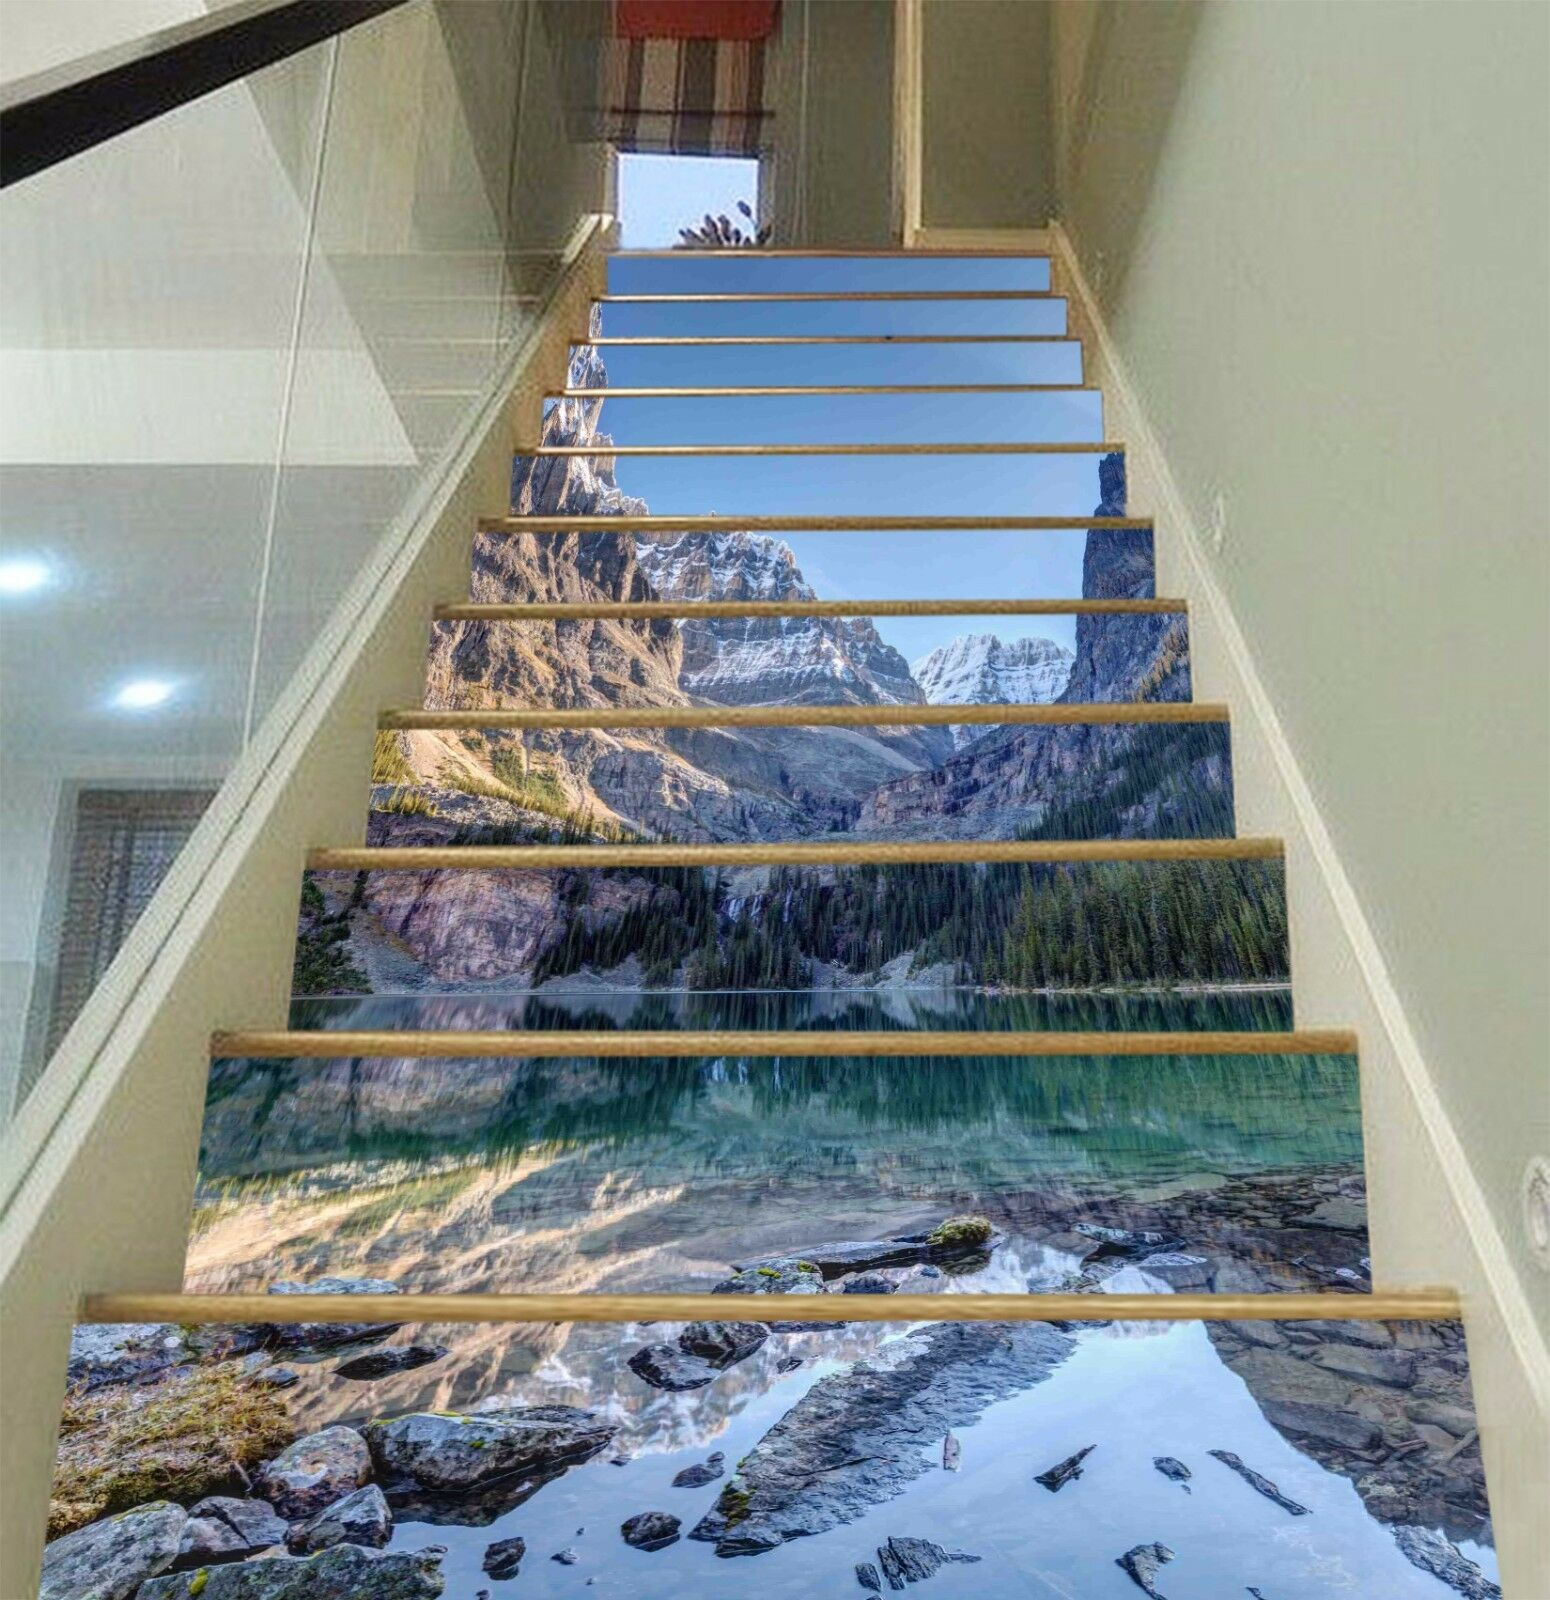 3D Clean Lake 395 Stairs Risers Decoration Photo Mural Vinyl Decal Wallpaper US